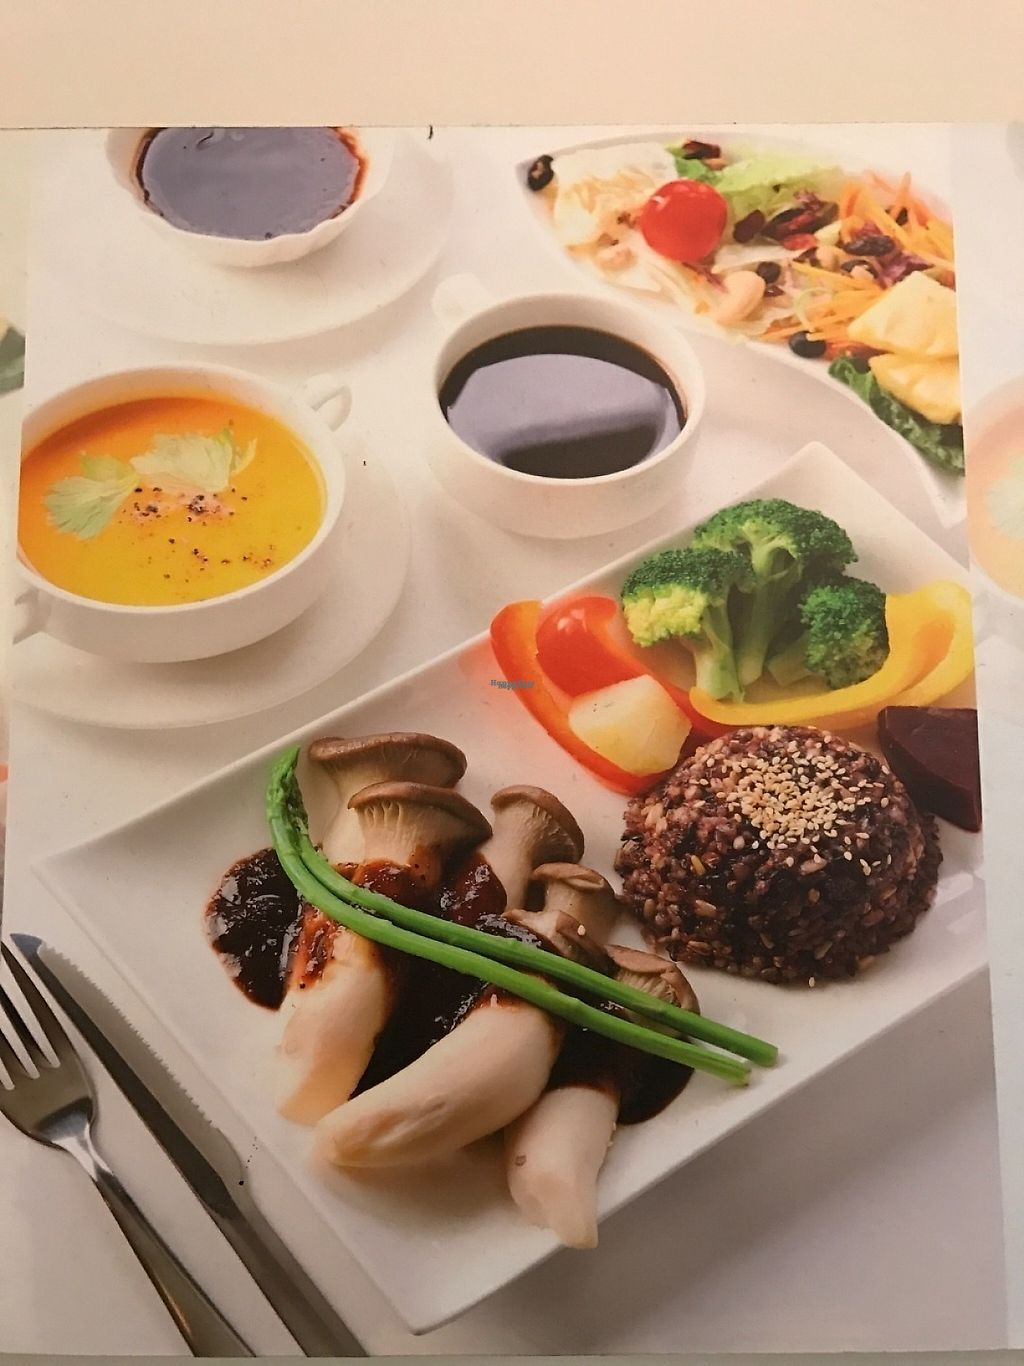 """Photo of Sunshinetomato  by <a href=""""/members/profile/Integrativelife"""">Integrativelife</a> <br/>Mushrooms with delicios home made sauce set menu <br/> March 24, 2017  - <a href='/contact/abuse/image/89199/240357'>Report</a>"""